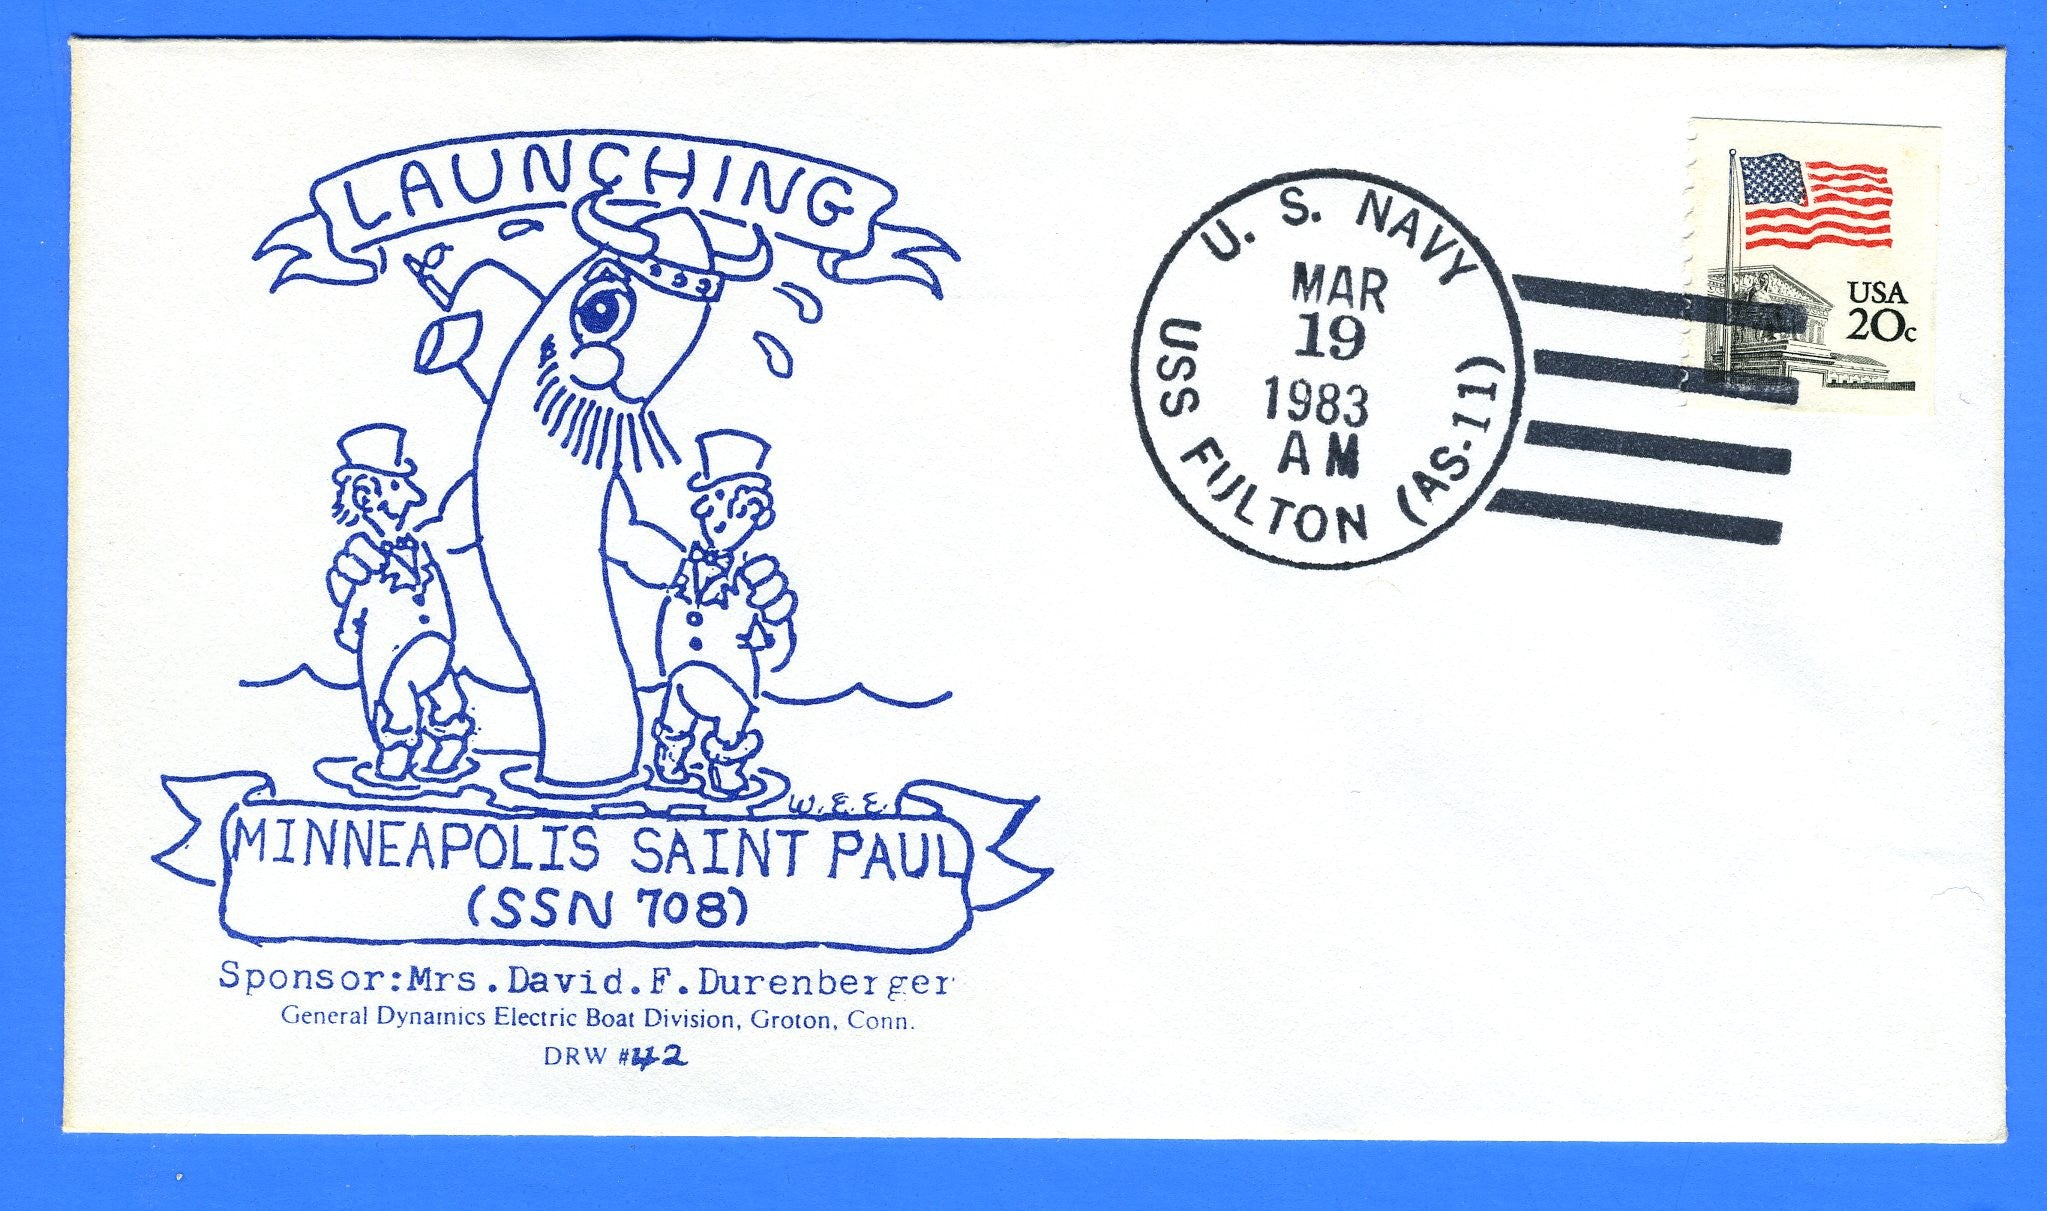 USS Minneapolis St Paul SSN-708 Launched March 1983 - USS Fulton AS-11 Cancel - DRW 42